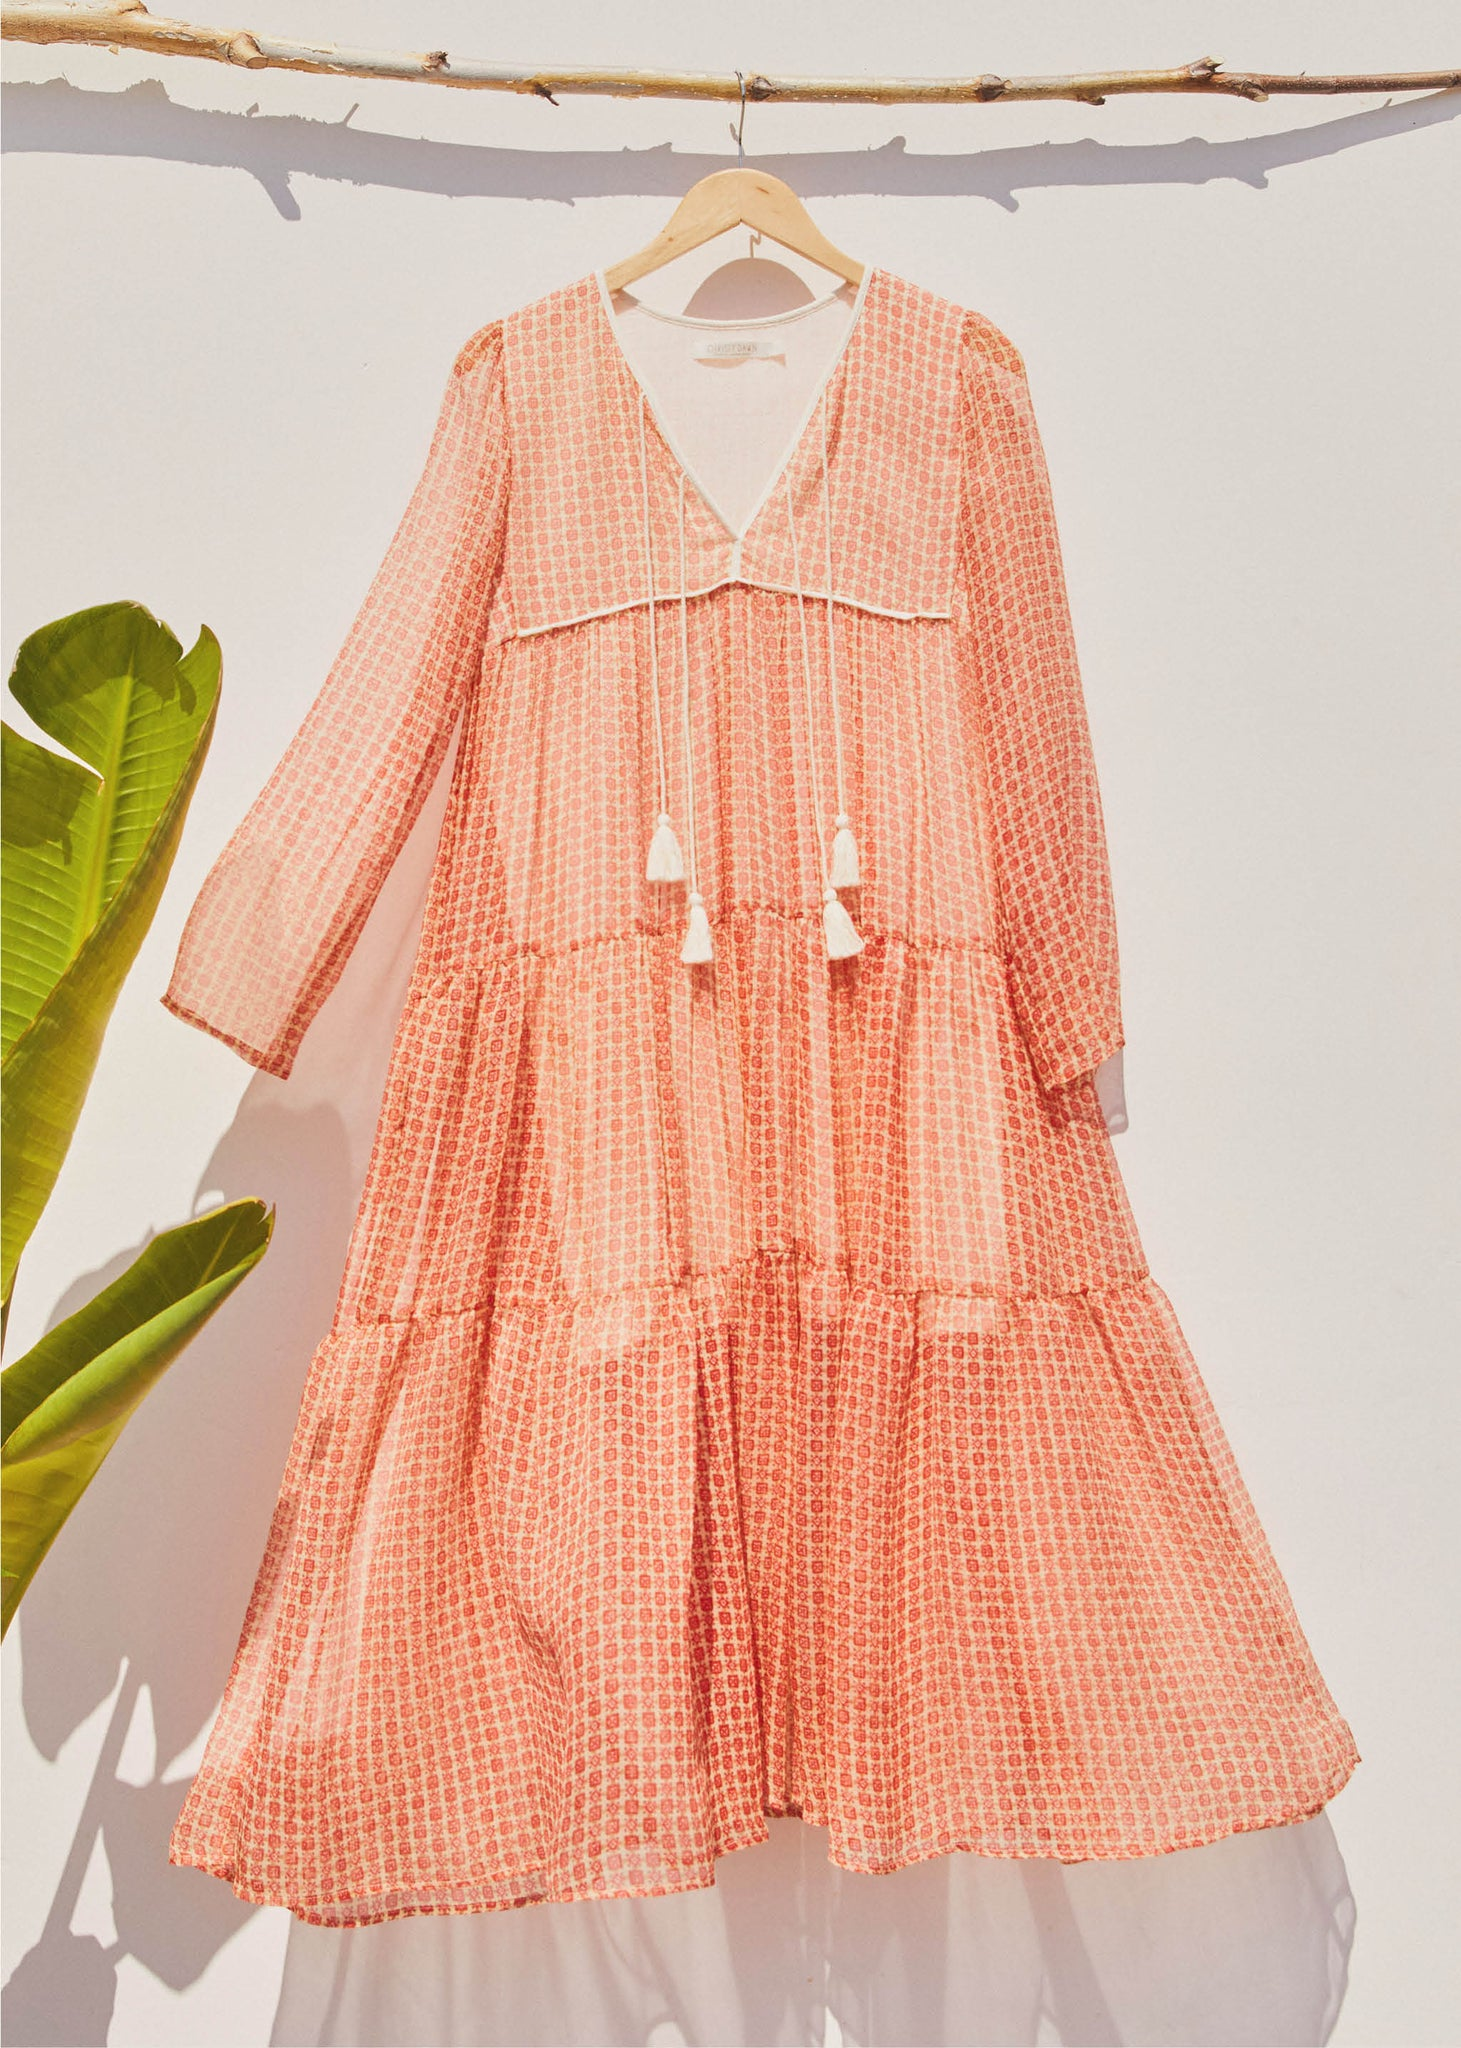 The Paloma Dress | Watermelon Ditsy (2-of-a-Kind)